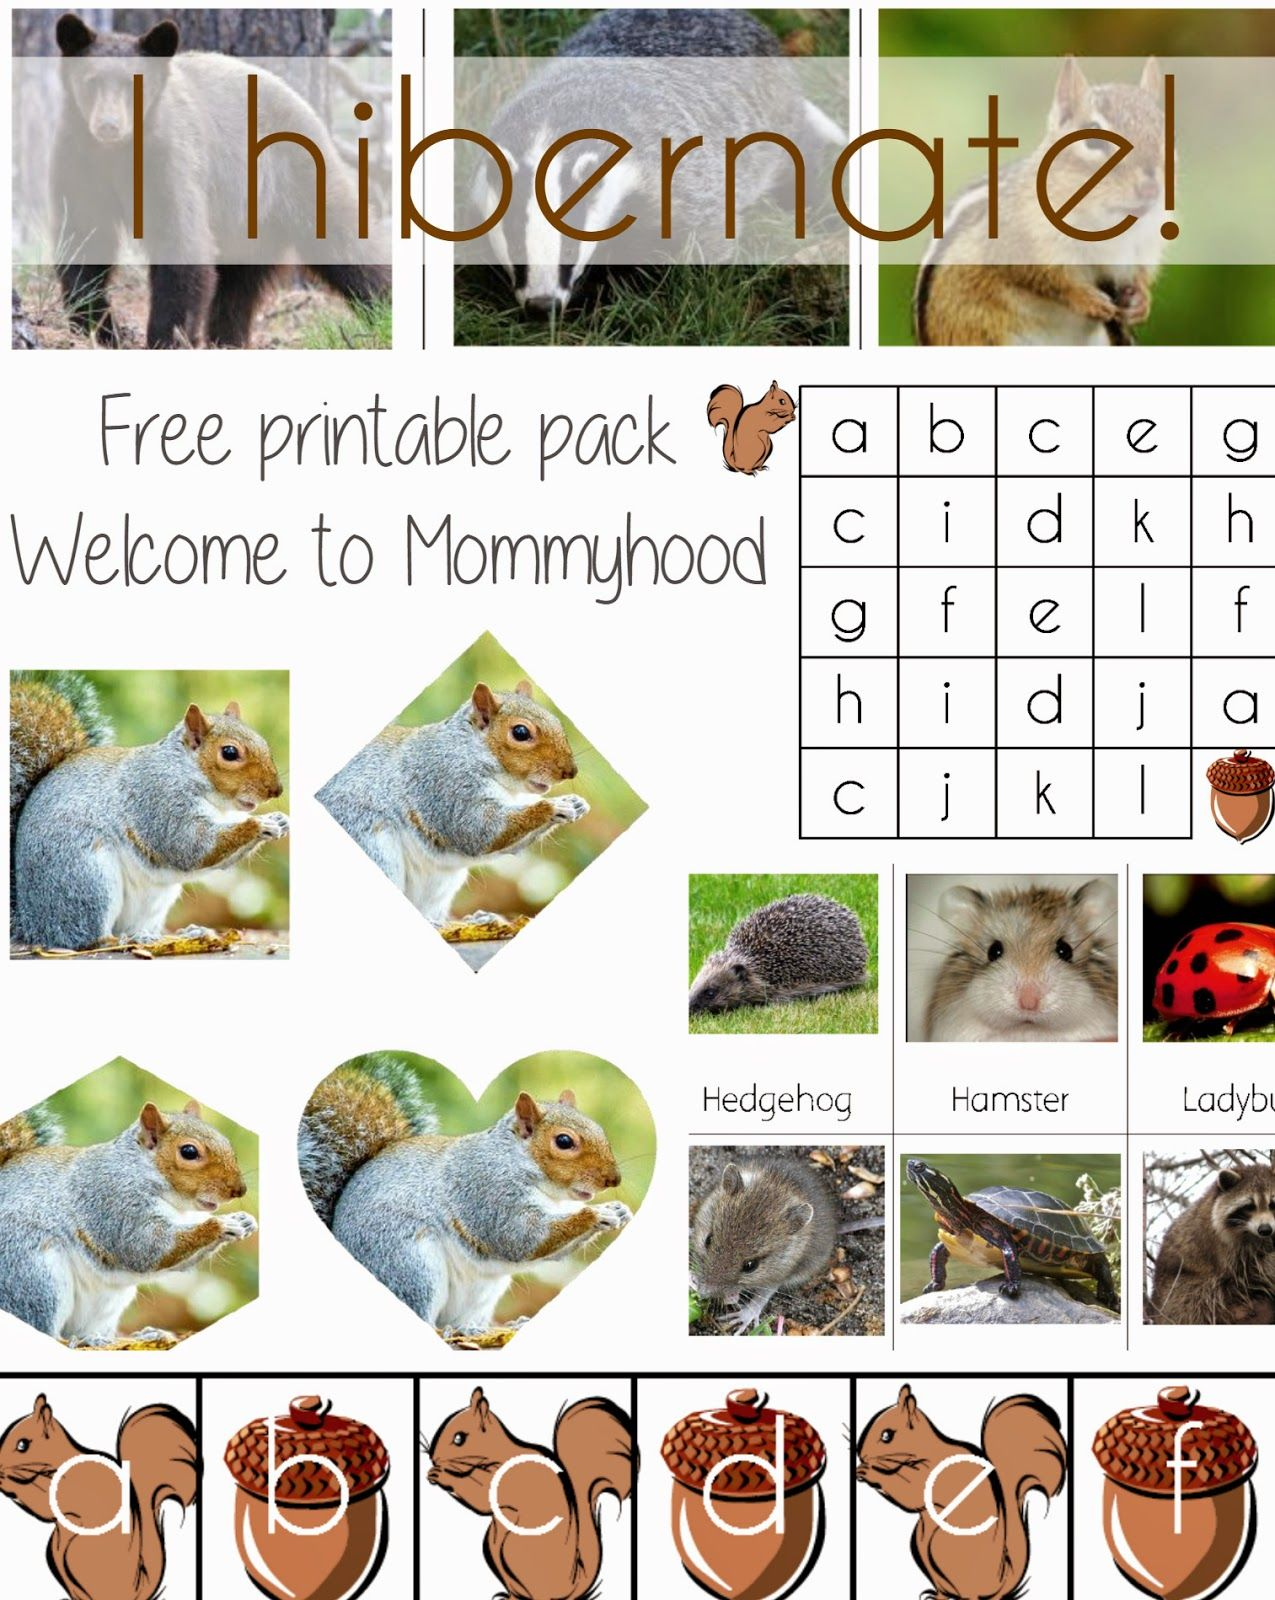 I Hibernate Free Printable Pack From Welcome To